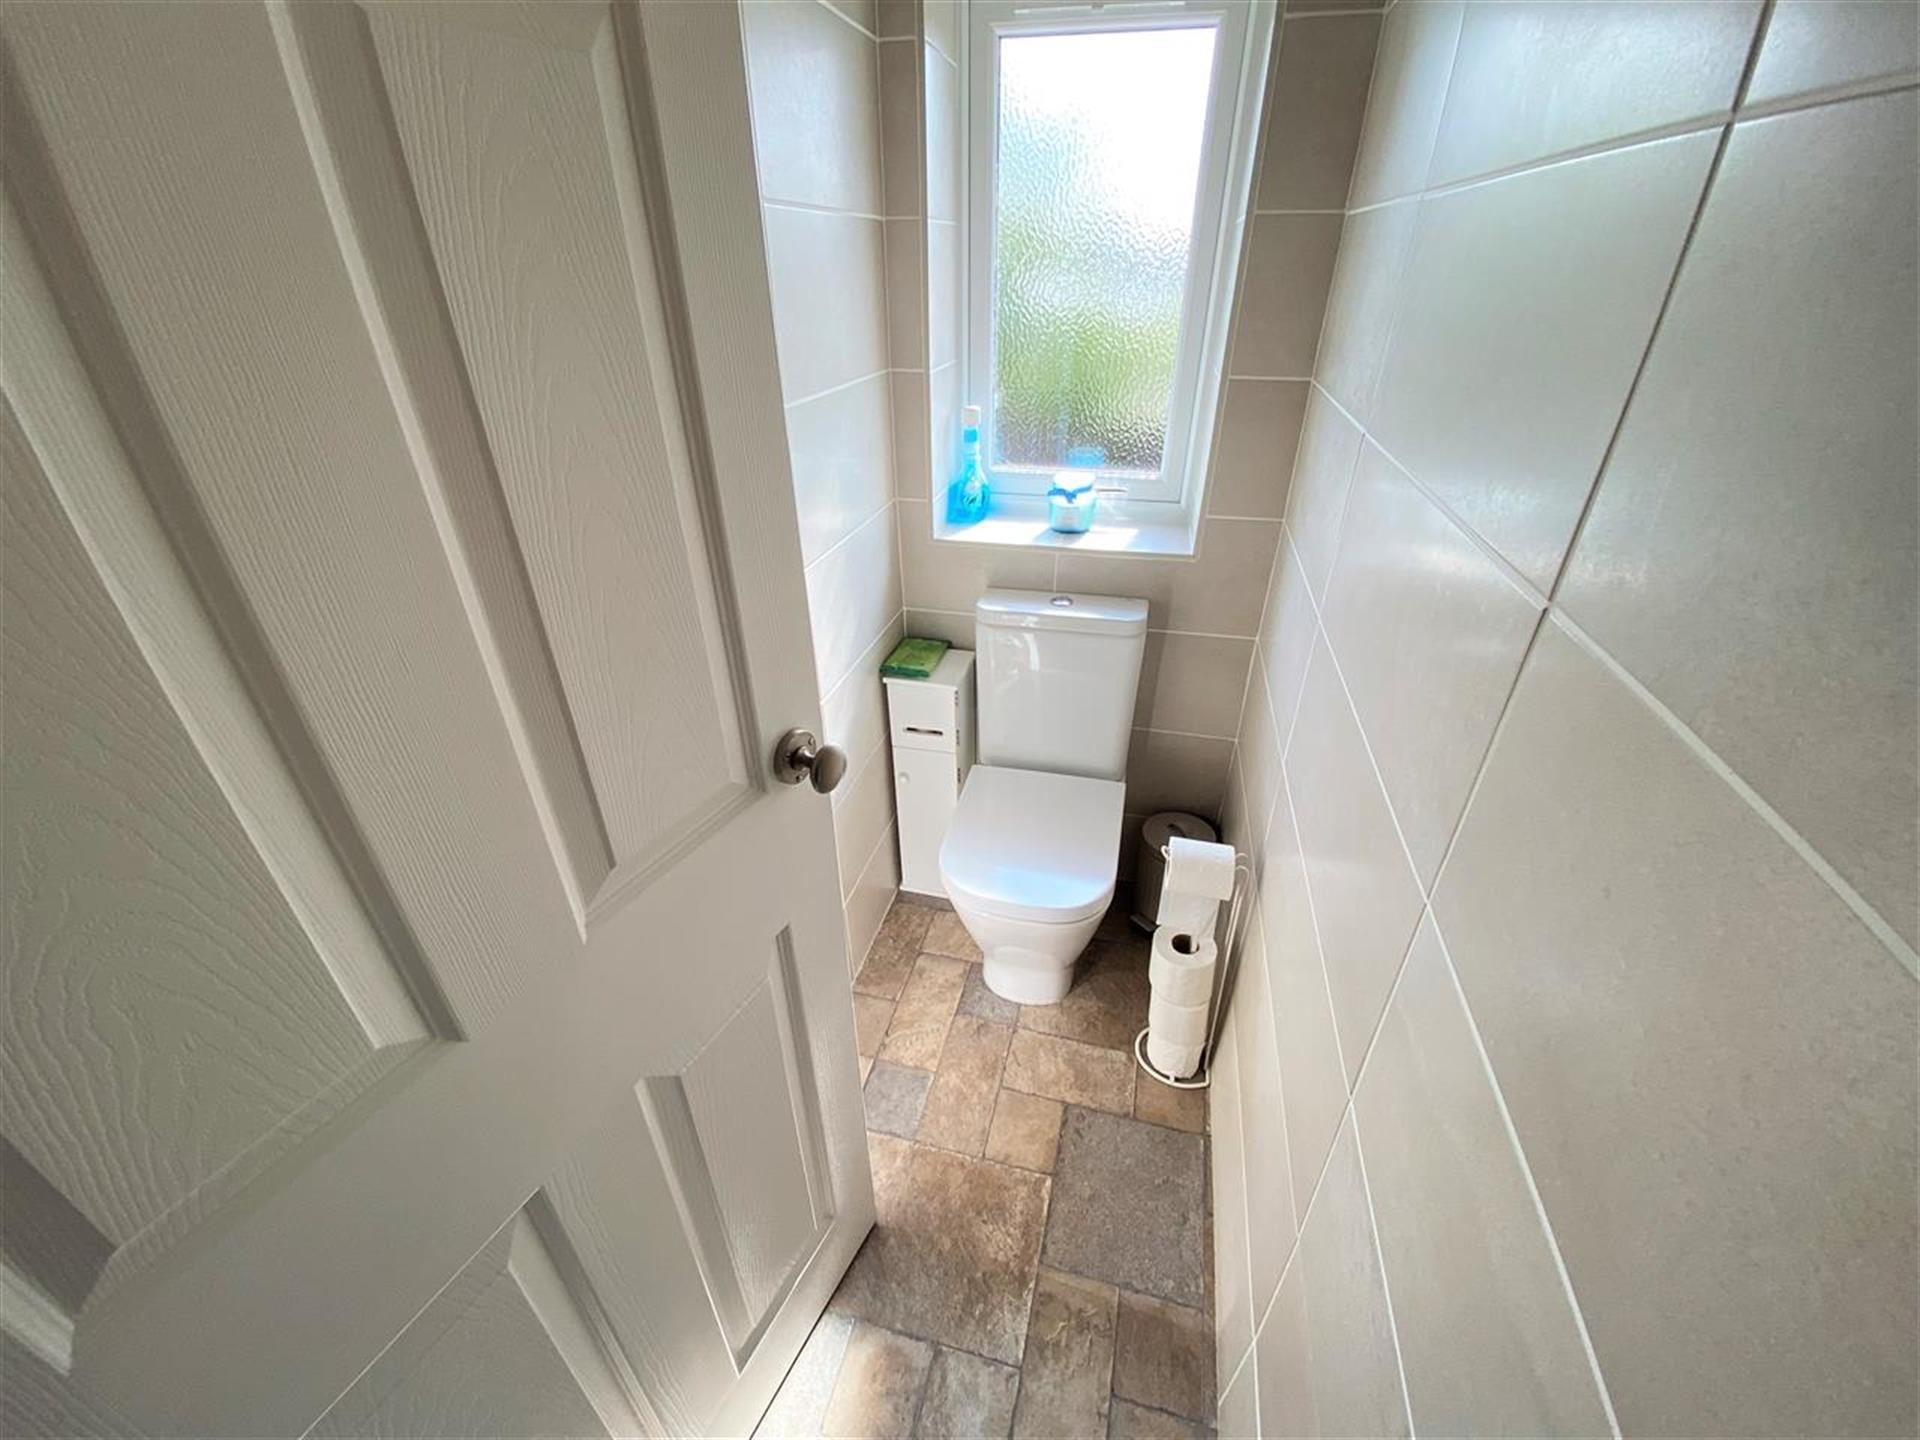 2 Bedroom Terraced House For Sale - Separate W/C